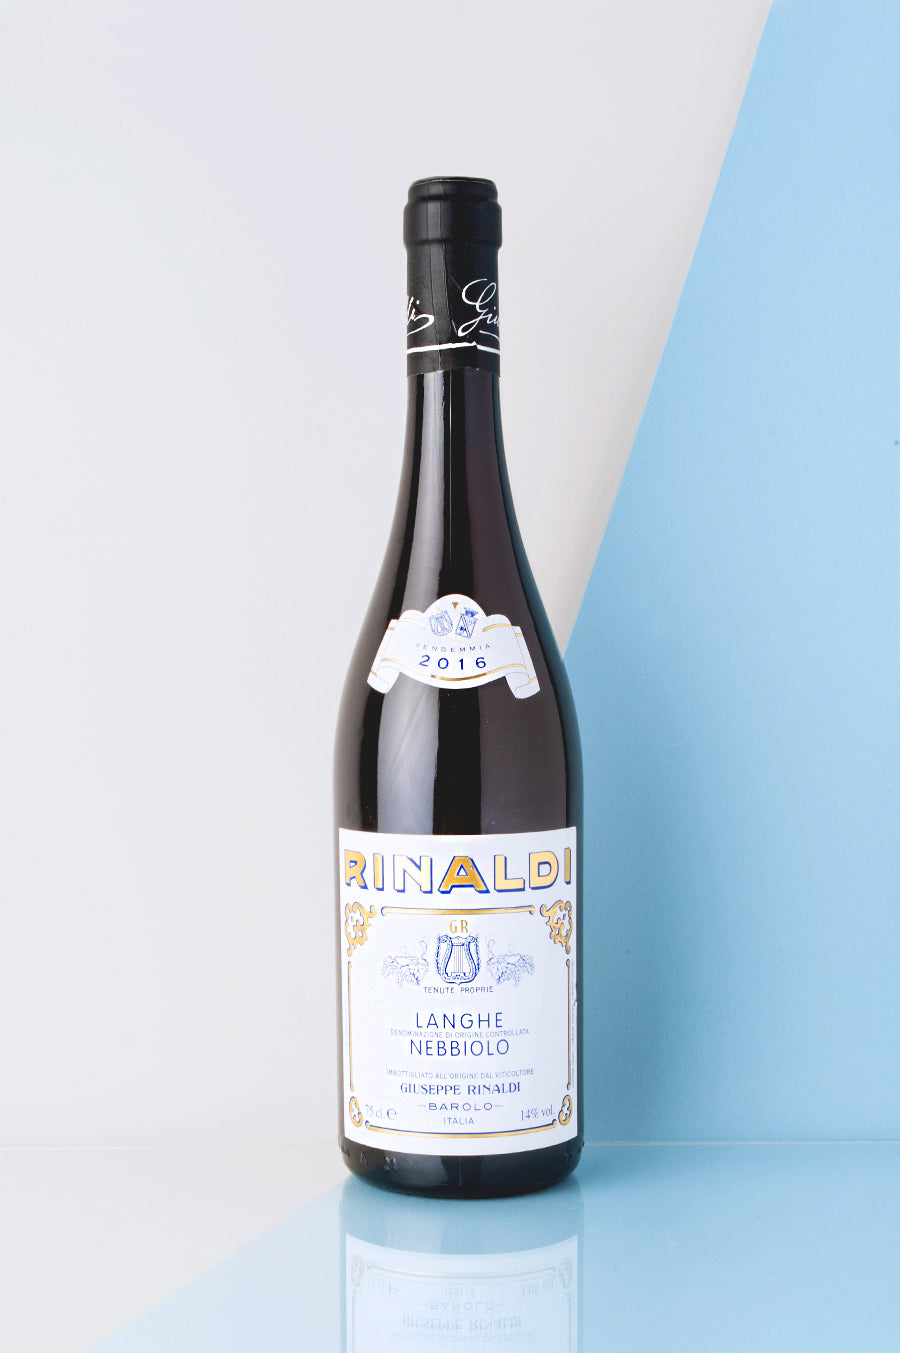 Guiseppe Rinaldi Langhe Nebbiolo